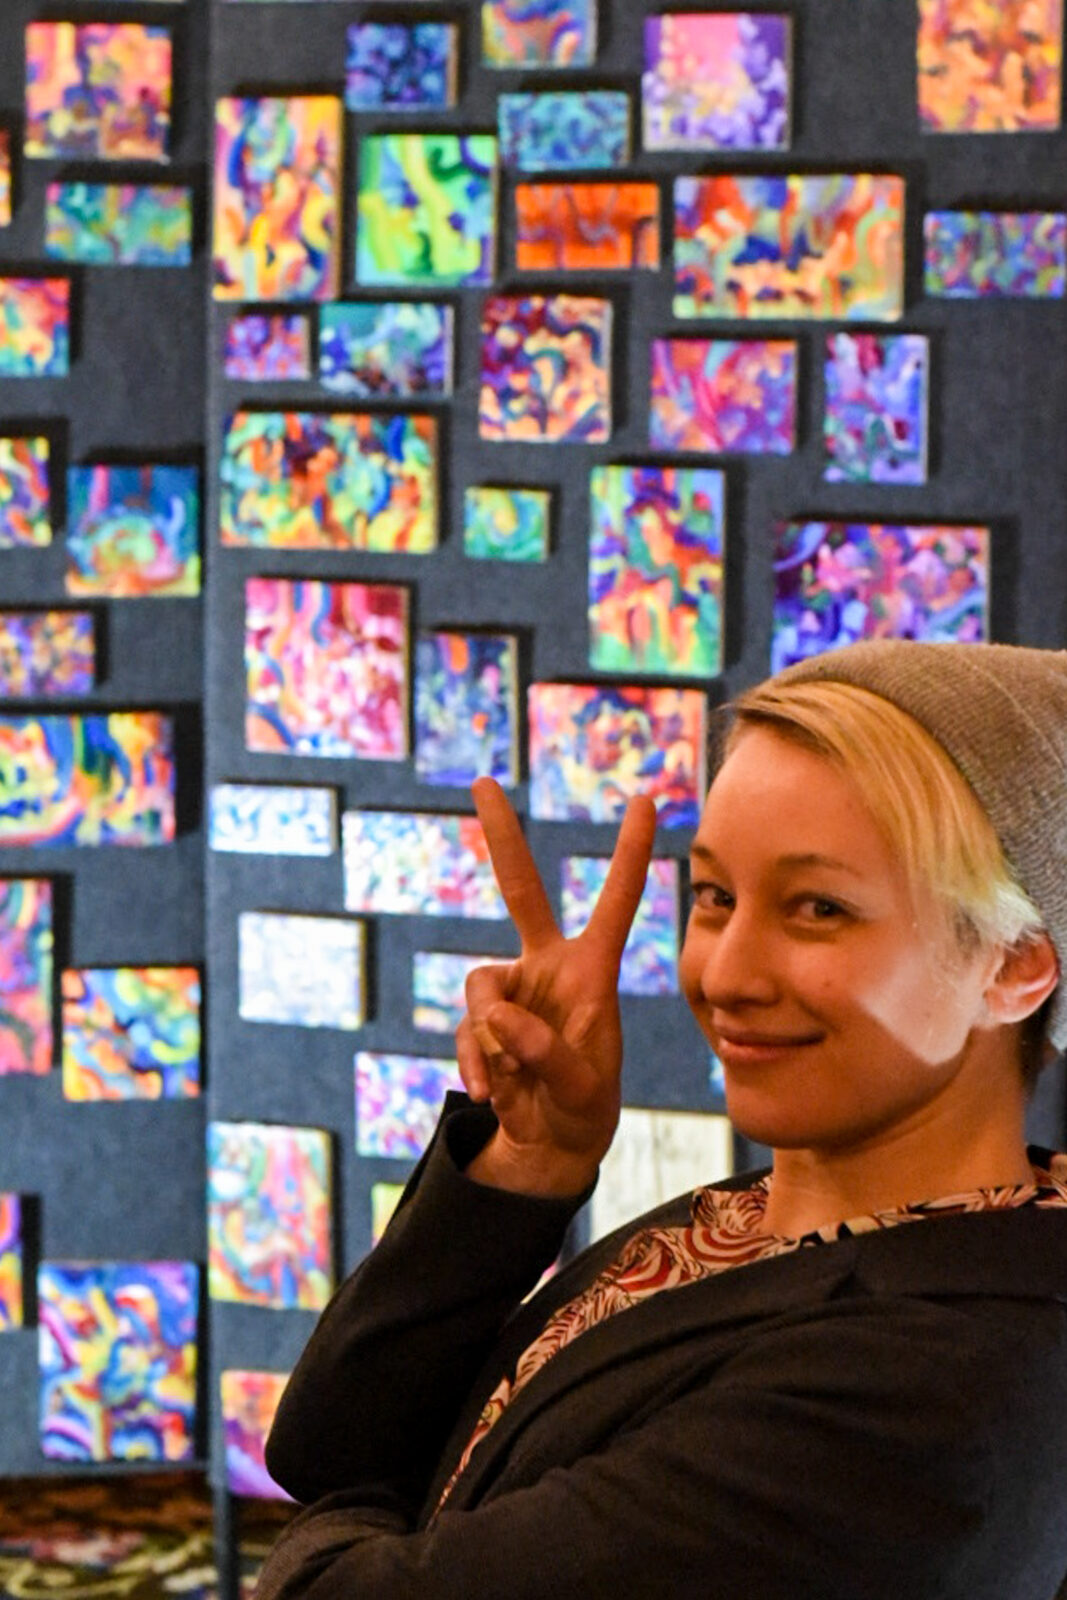 Person posing holding up a peace sign standing in front of a display of artwork